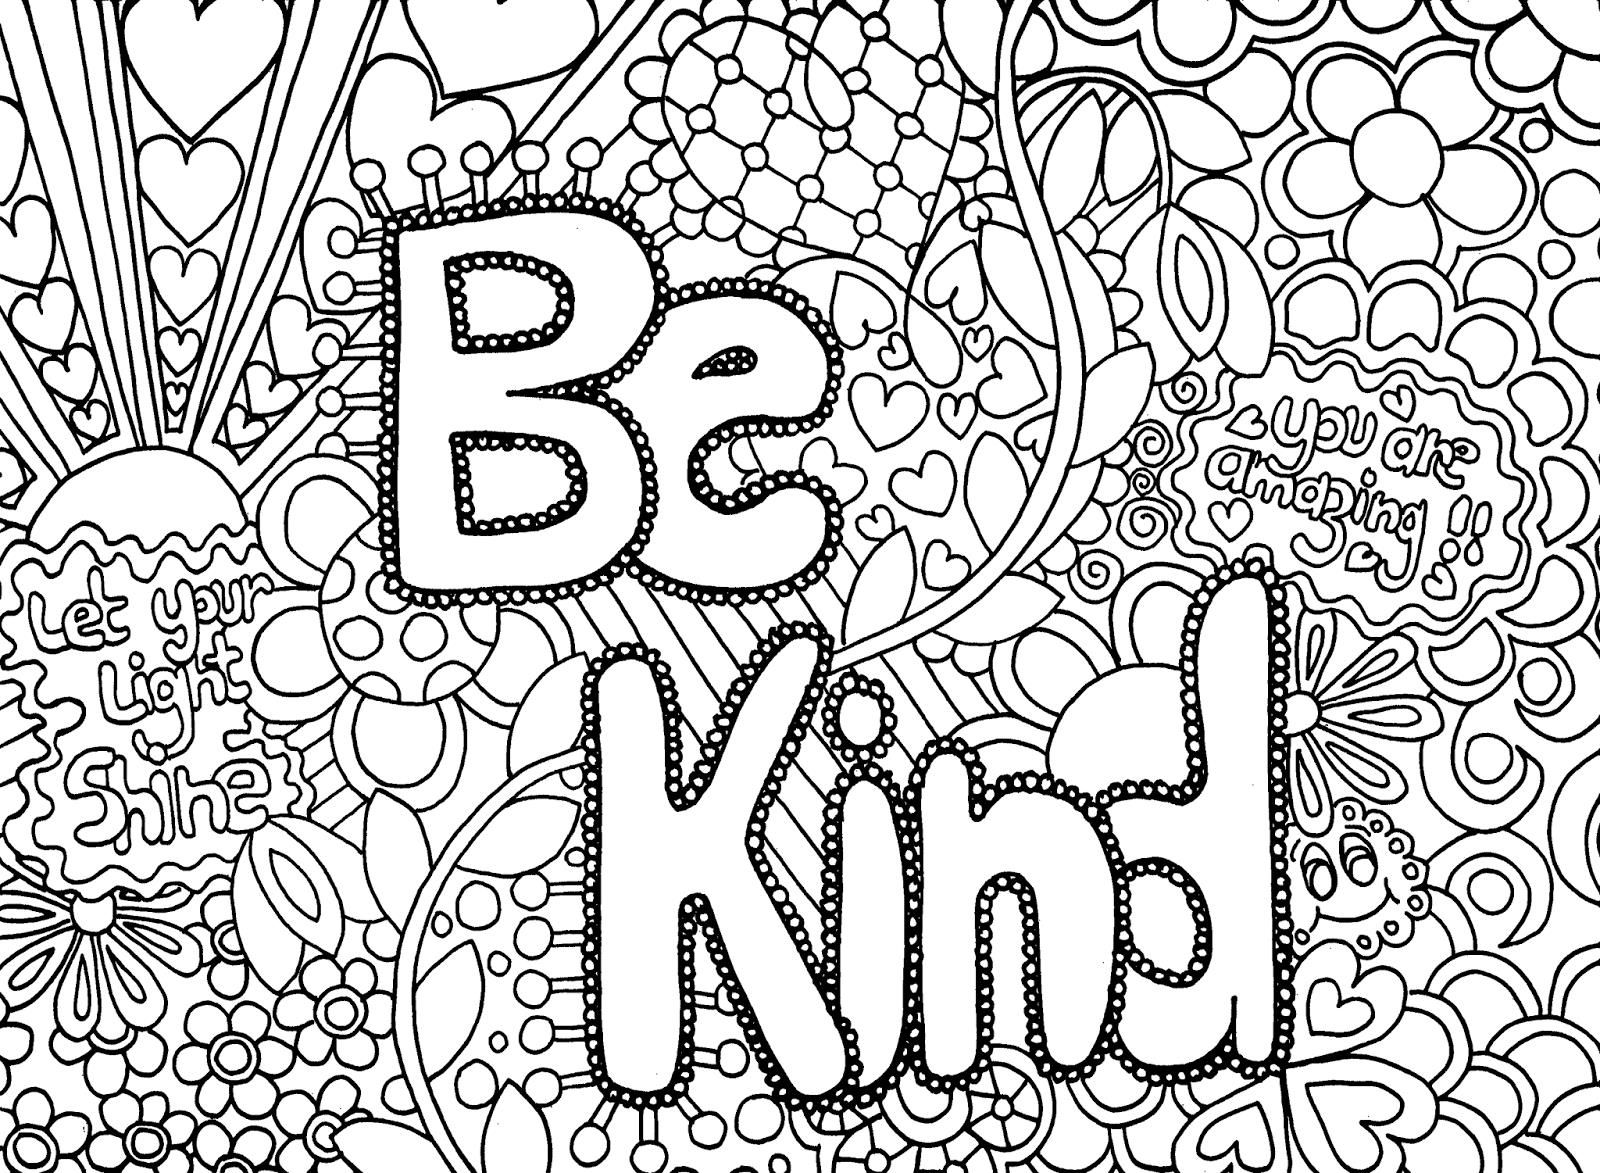 Uncategorized Free Printable Difficult Coloring Pages httpcolorings codifficult coloring pages difficult hard printable browse for more free printab